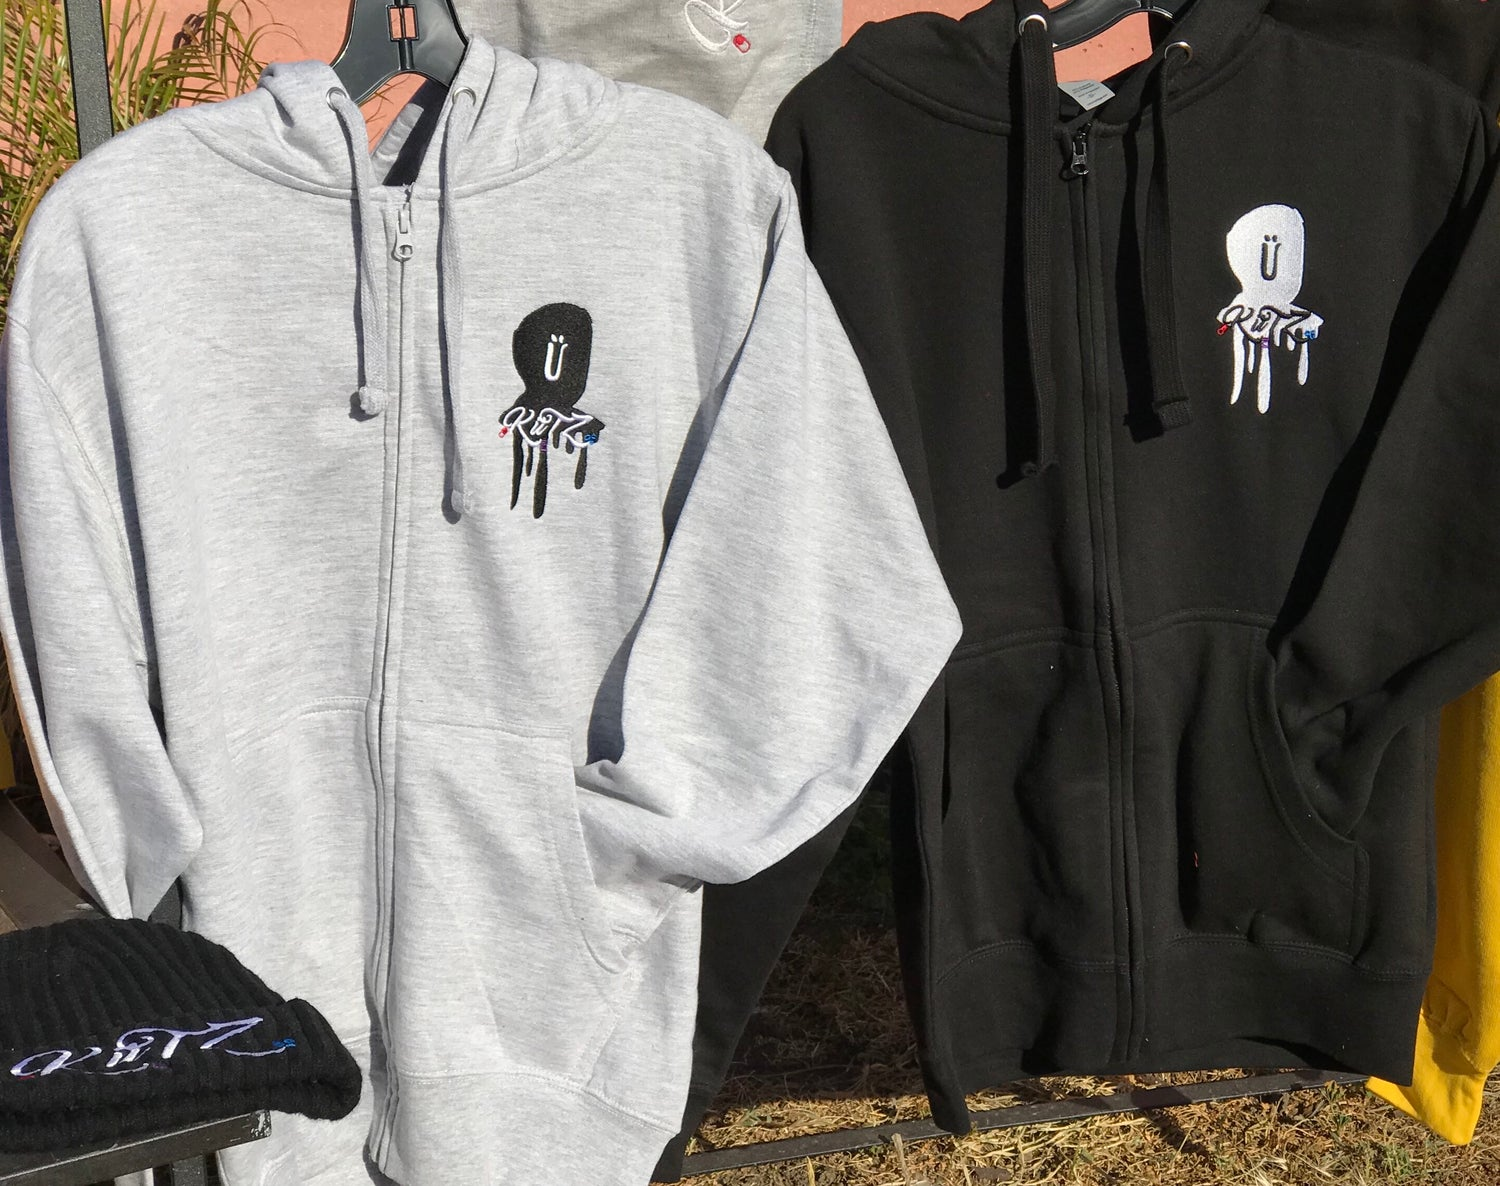 Image of Drippy KüTz Zipper Hoodies